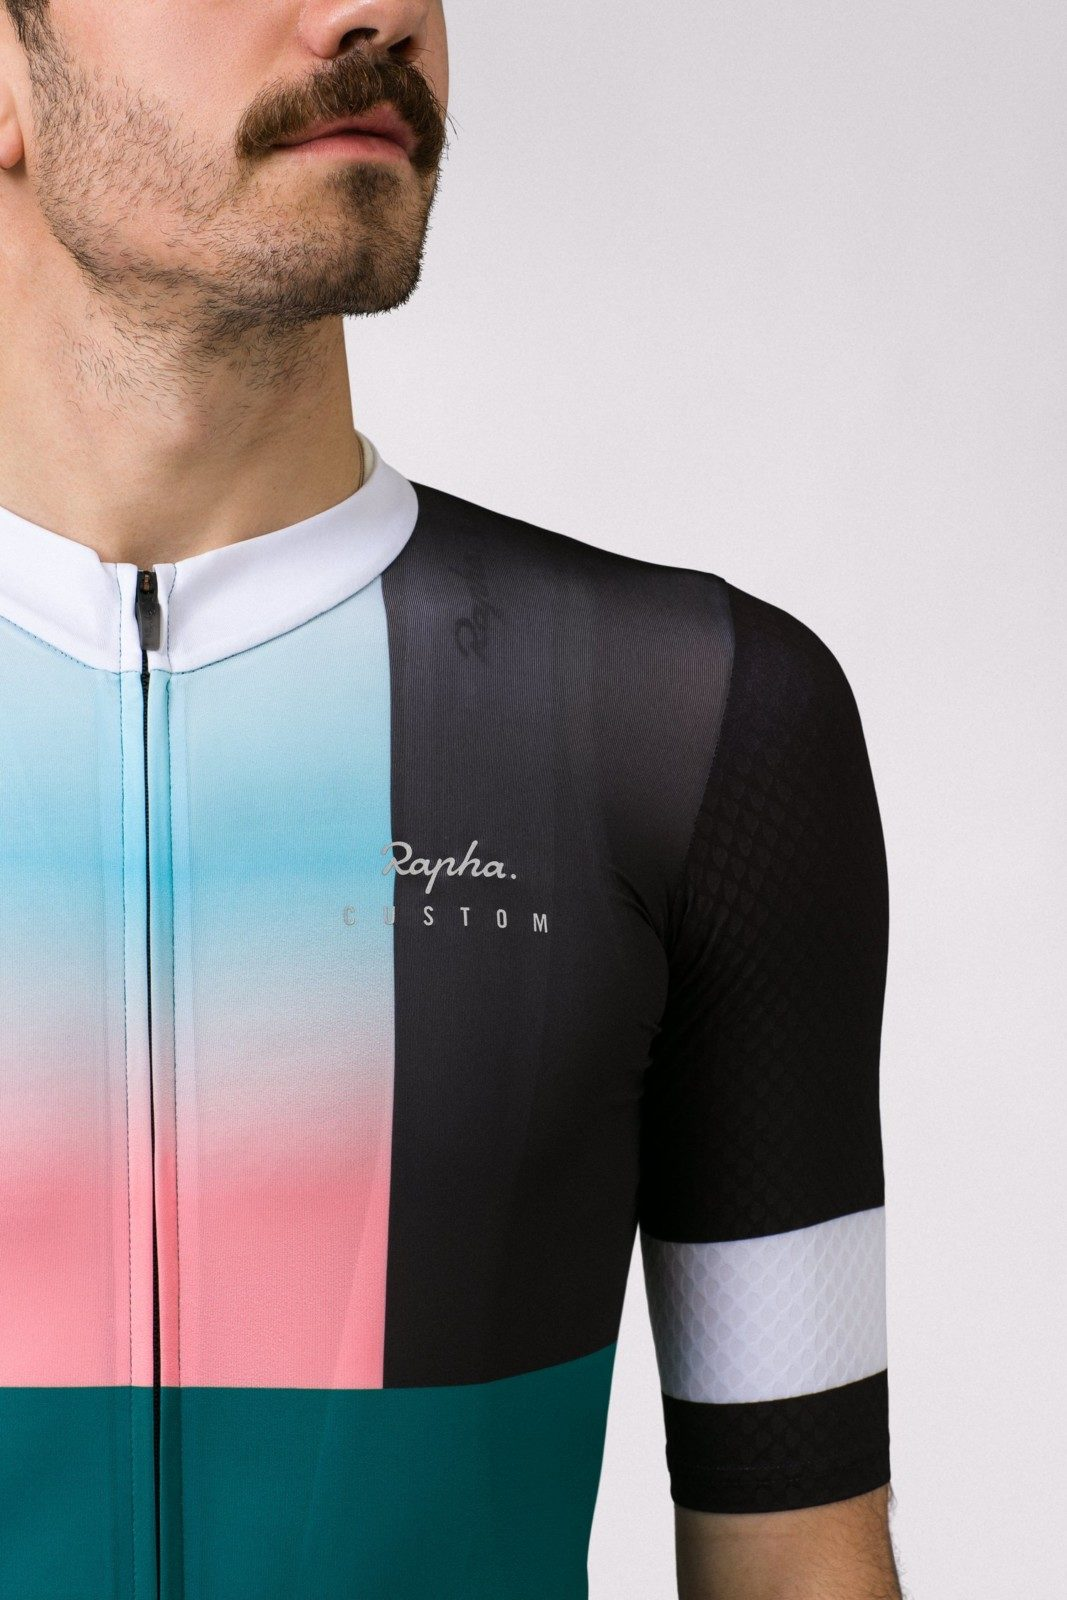 Rapha Custom